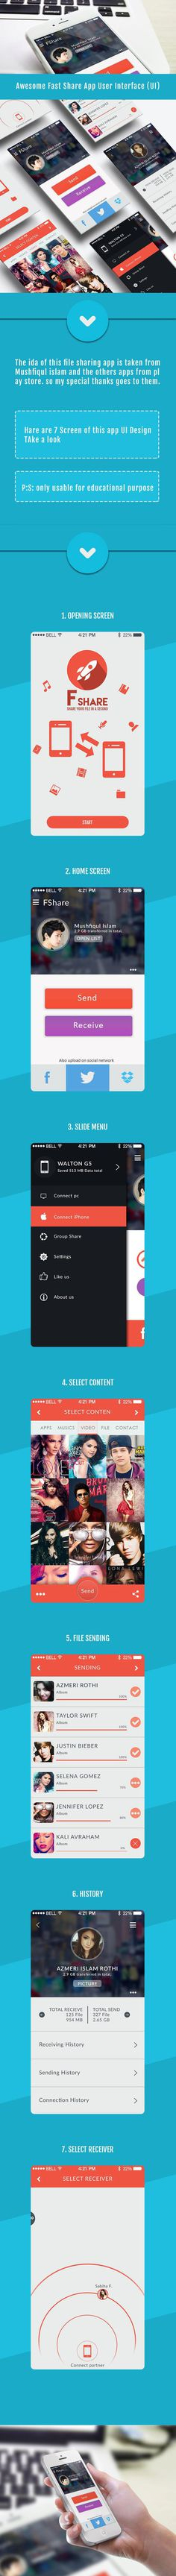 File share app UI design by Ashadul islam Samiul